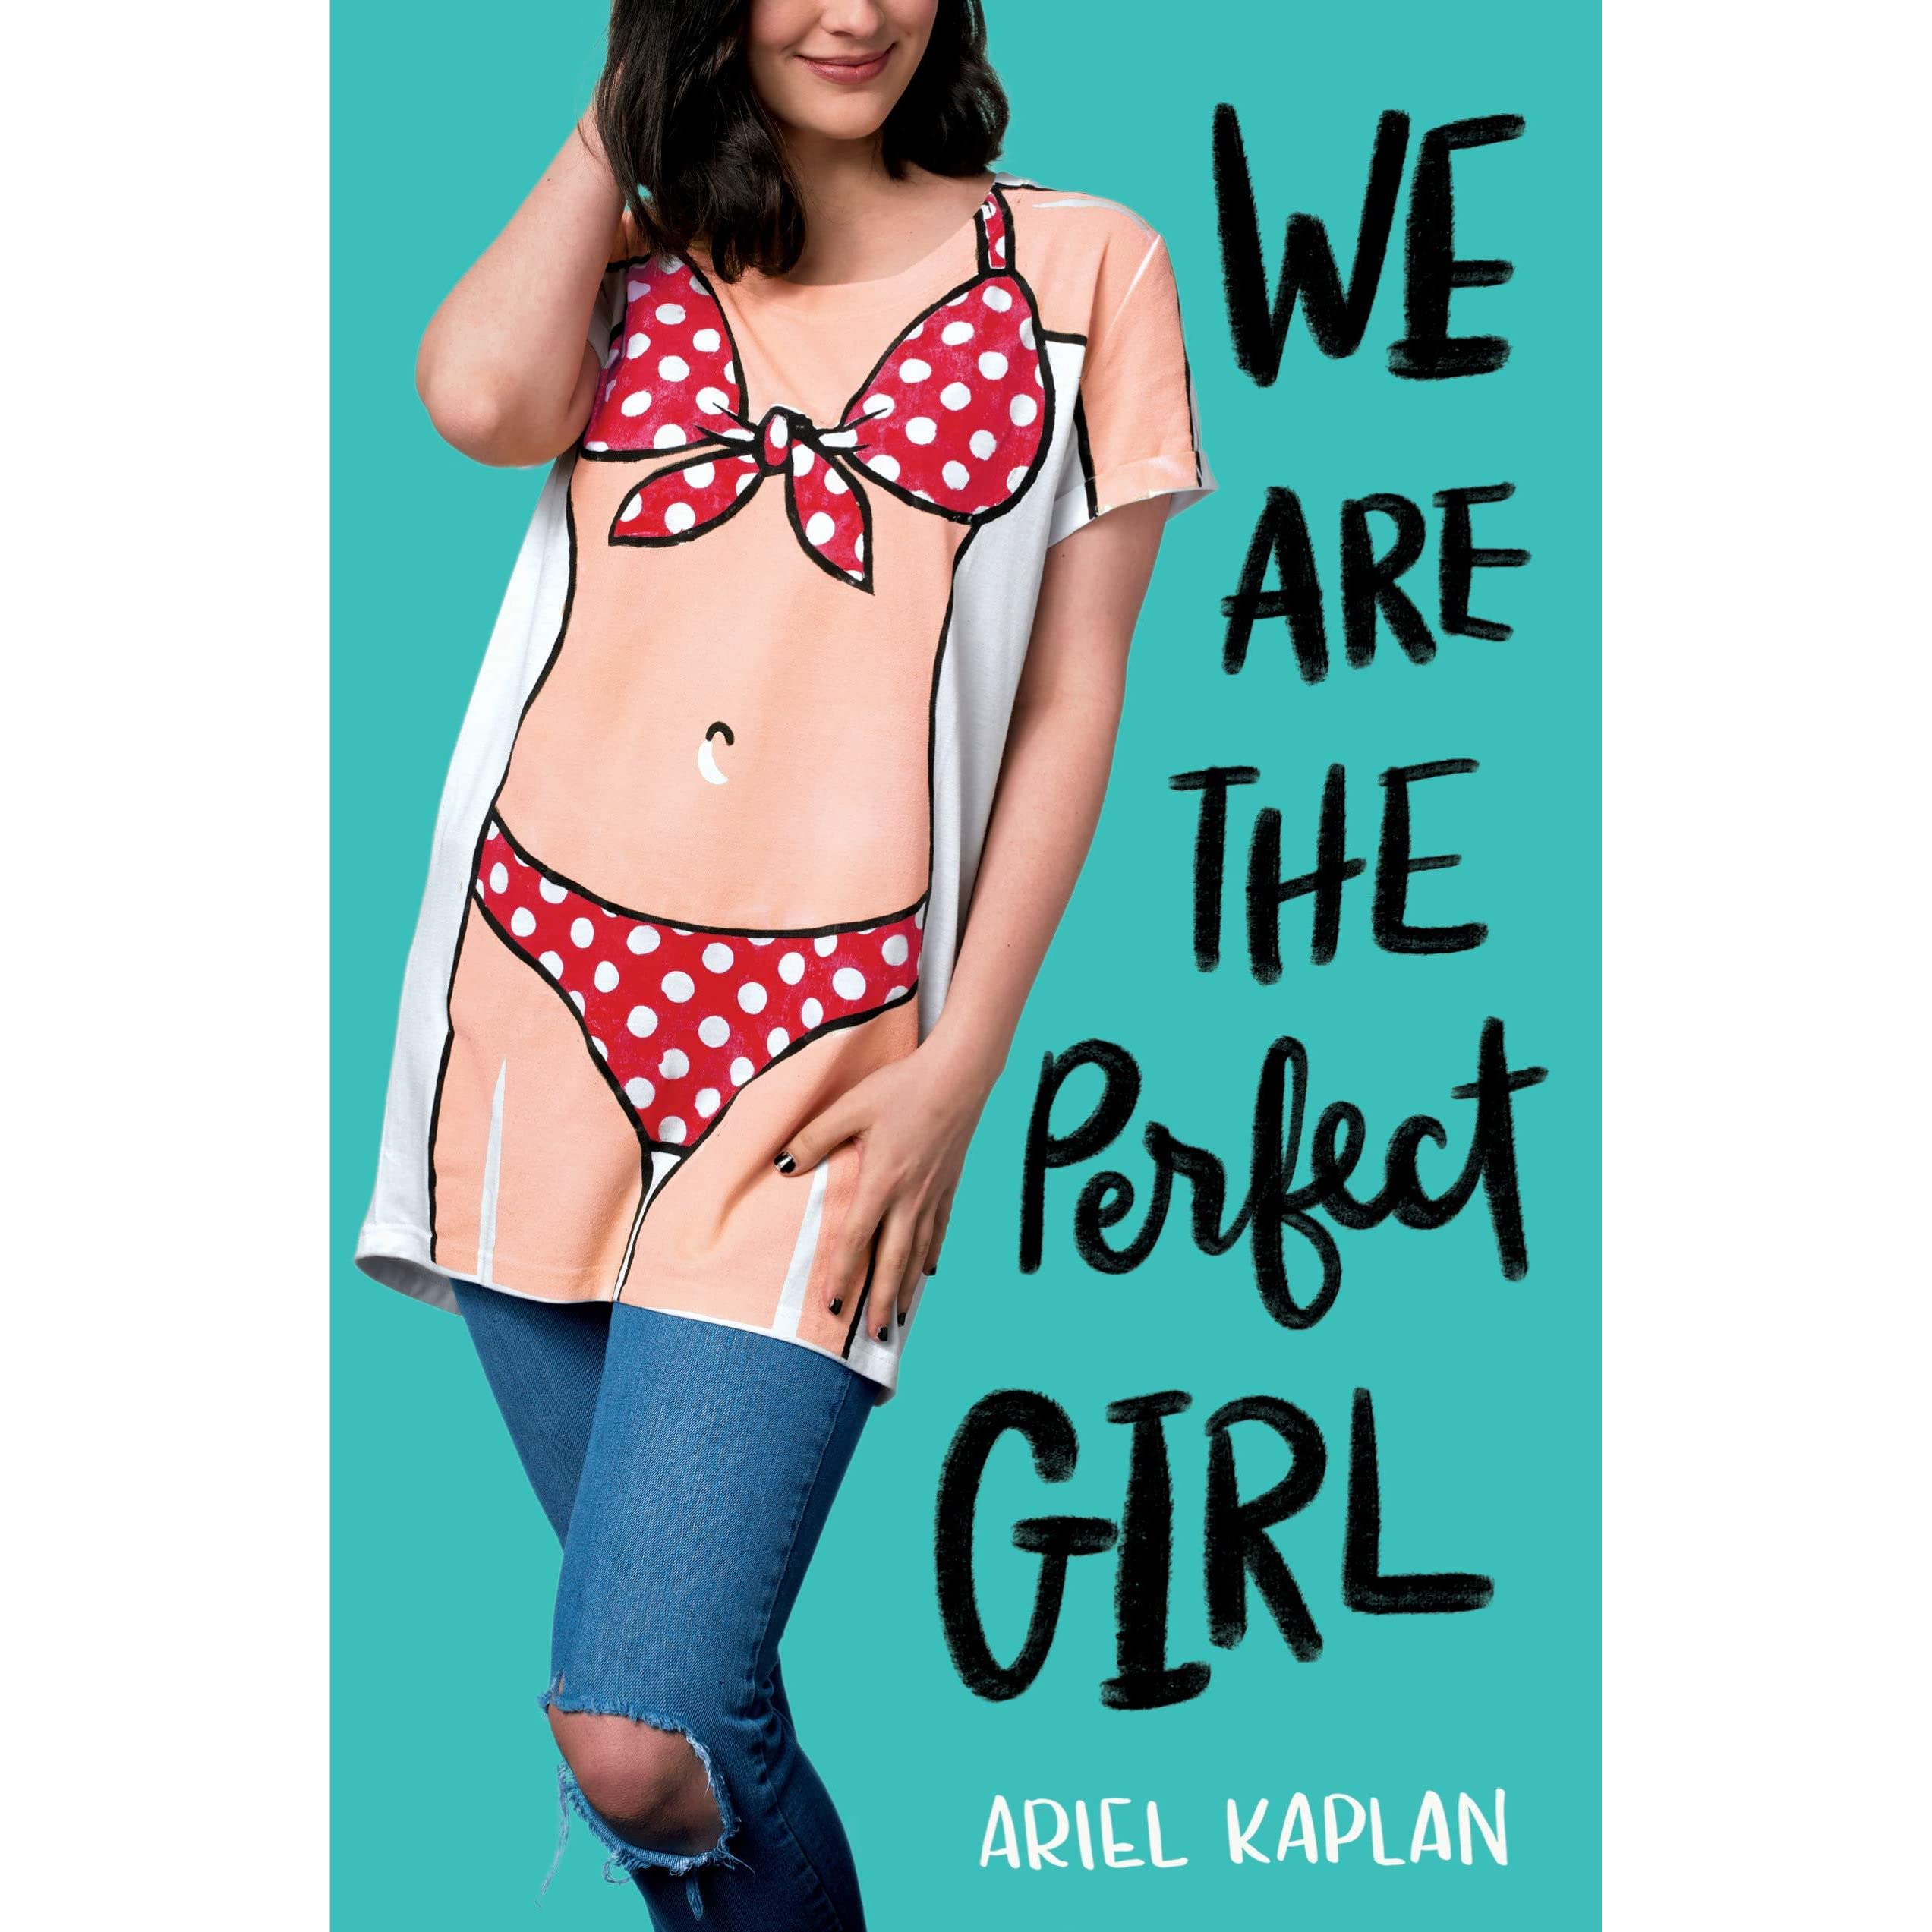 69cb463c1b6 We Are the Perfect Girl by Ariel Kaplan